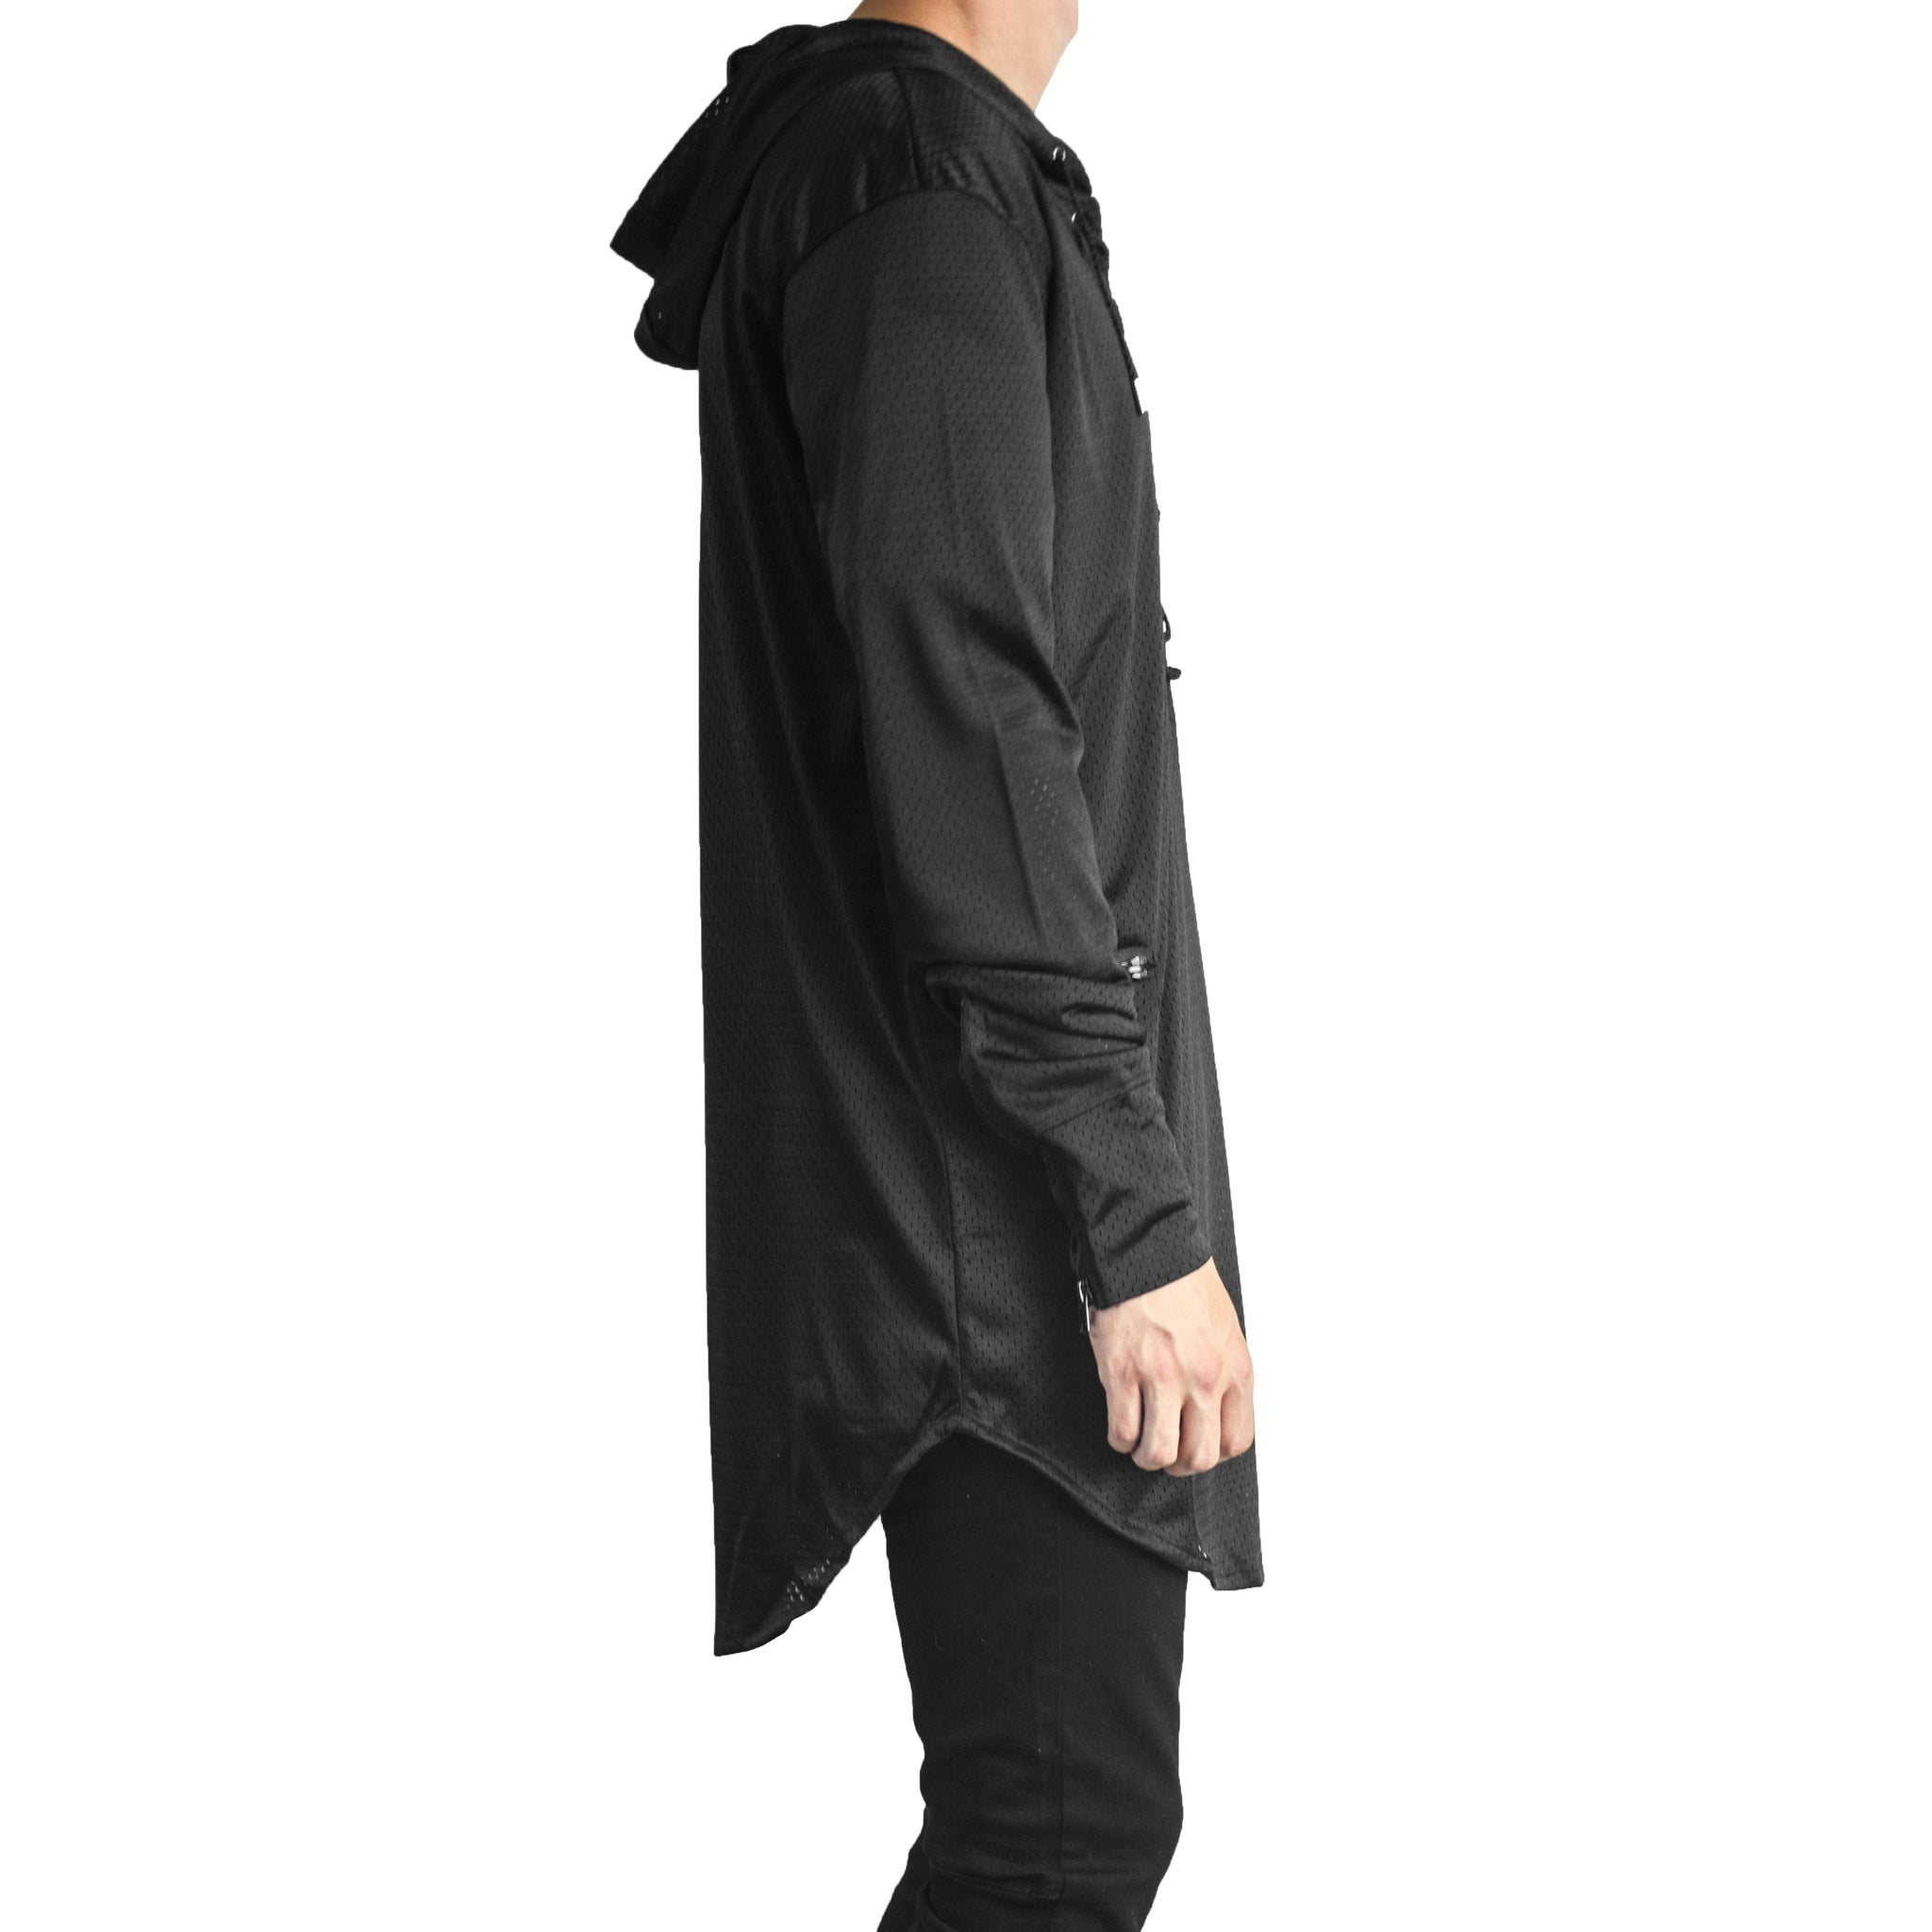 Stringup Hoody : Black